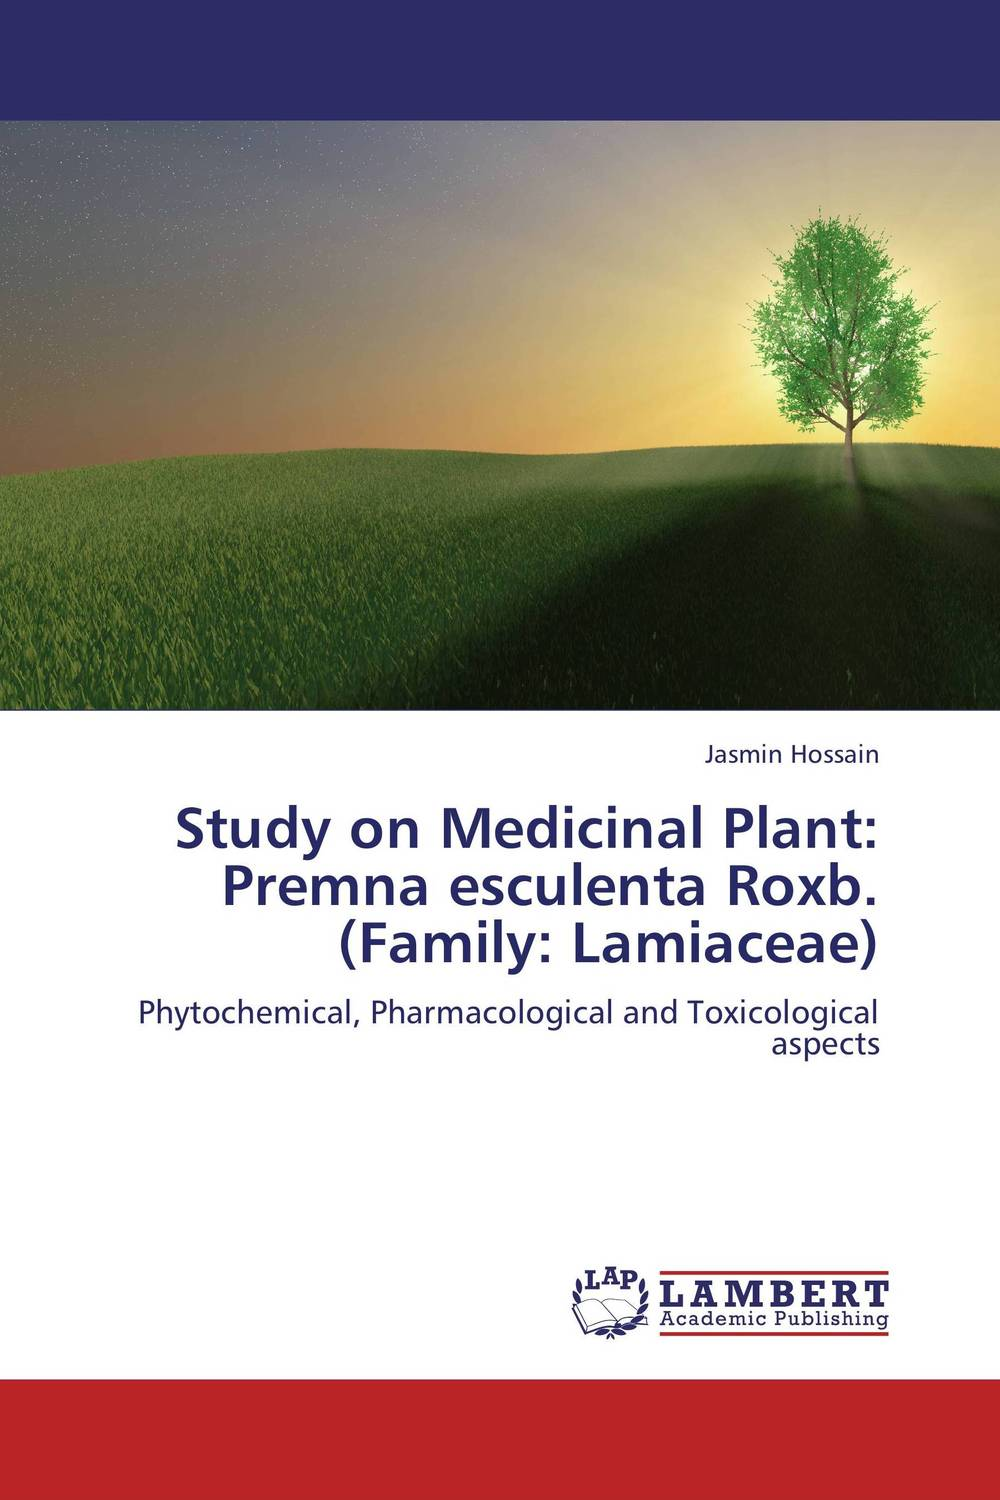 Study on Medicinal Plant: Premna esculenta Roxb. (Family: Lamiaceae) phytochemical investigation of the flavonoids